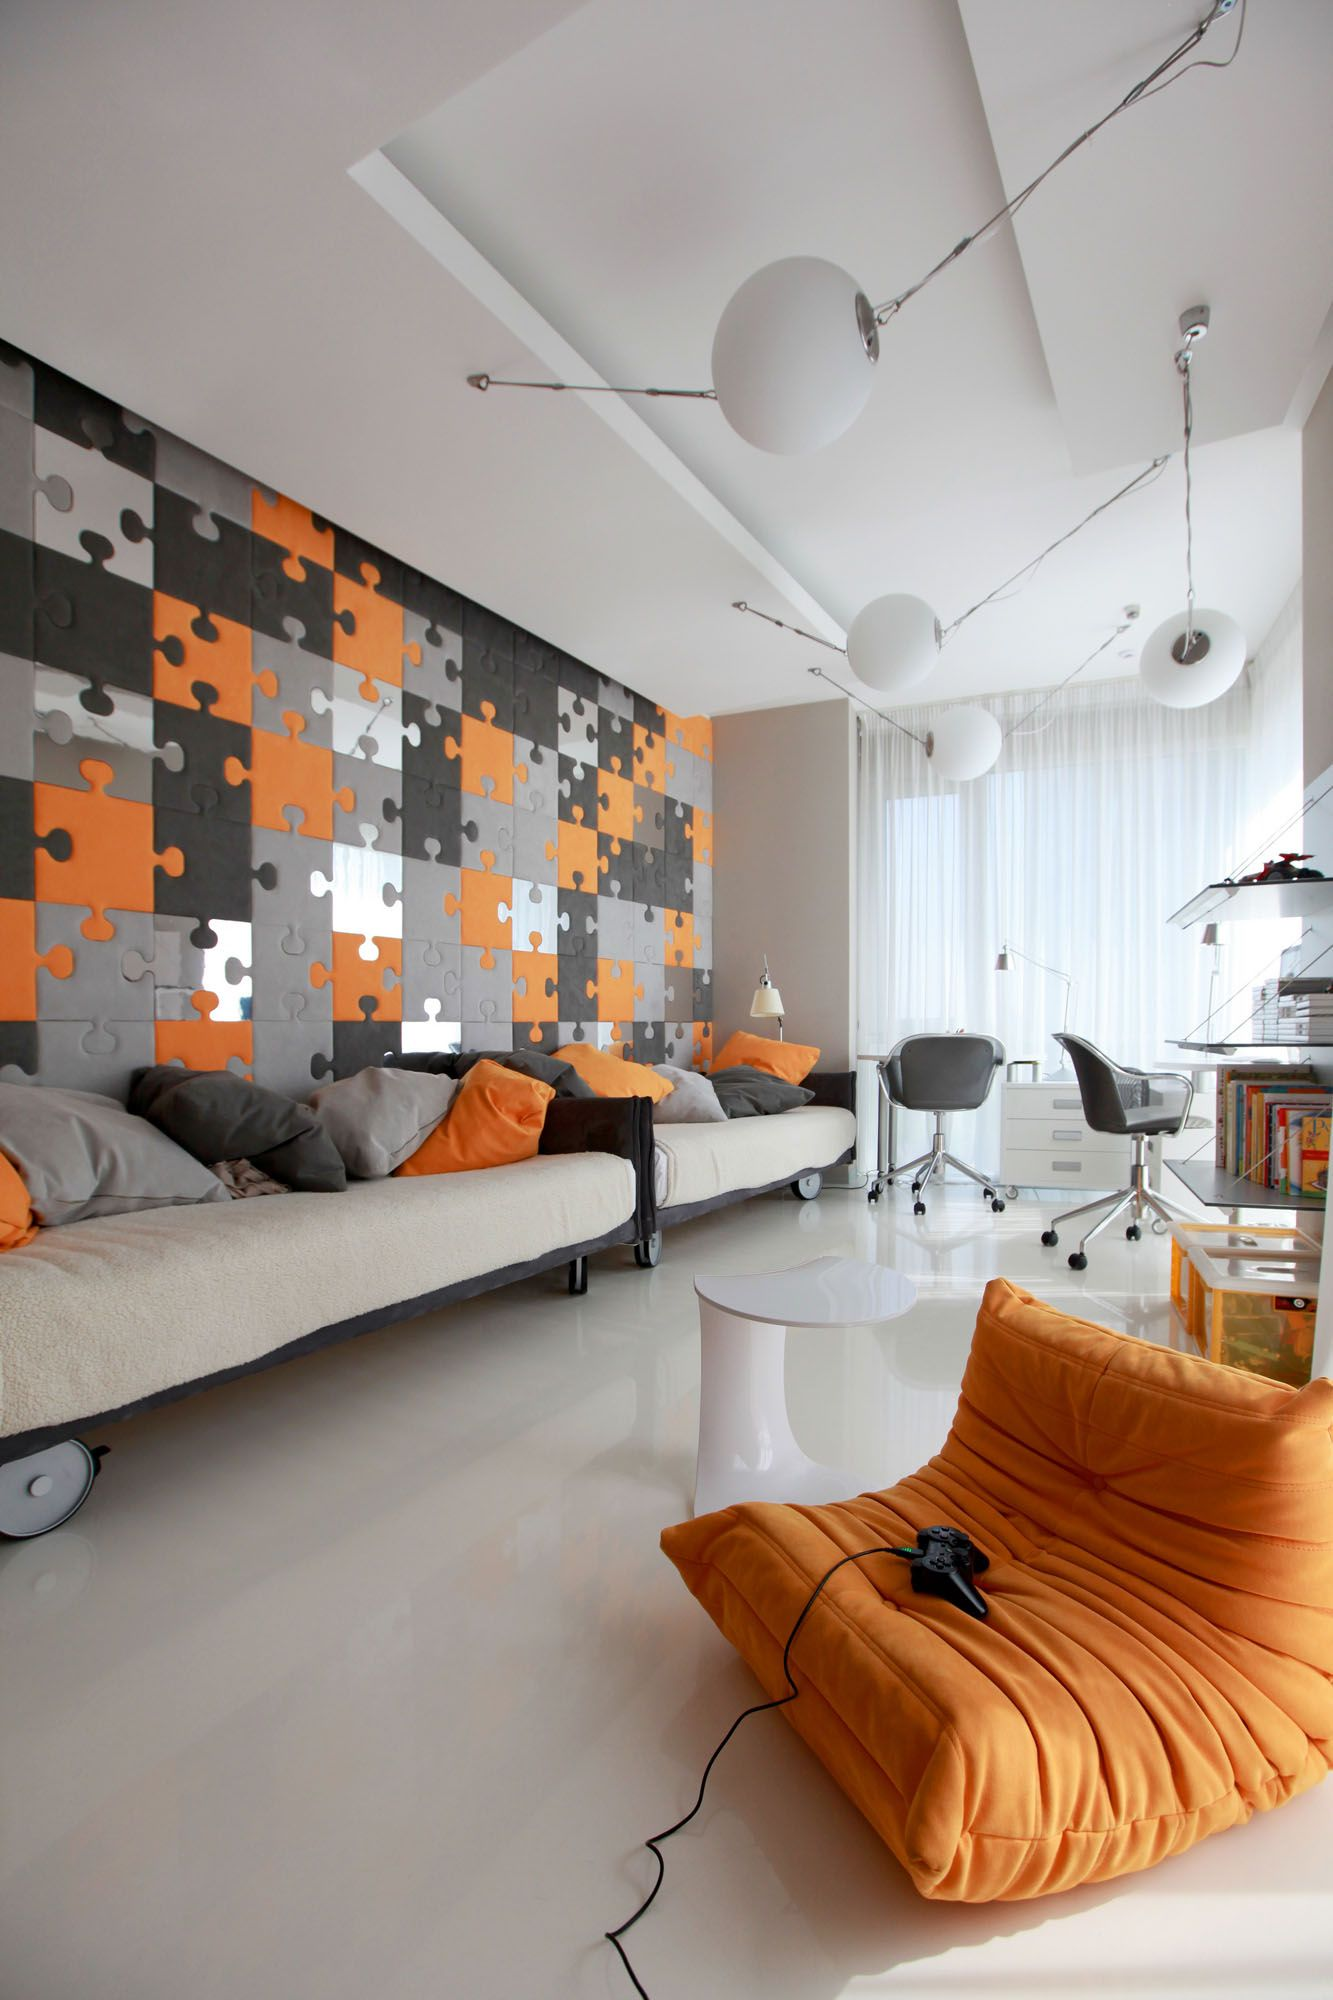 Riviera apartment by geometrix design caandesign - Punch home design architectural series 18 ...